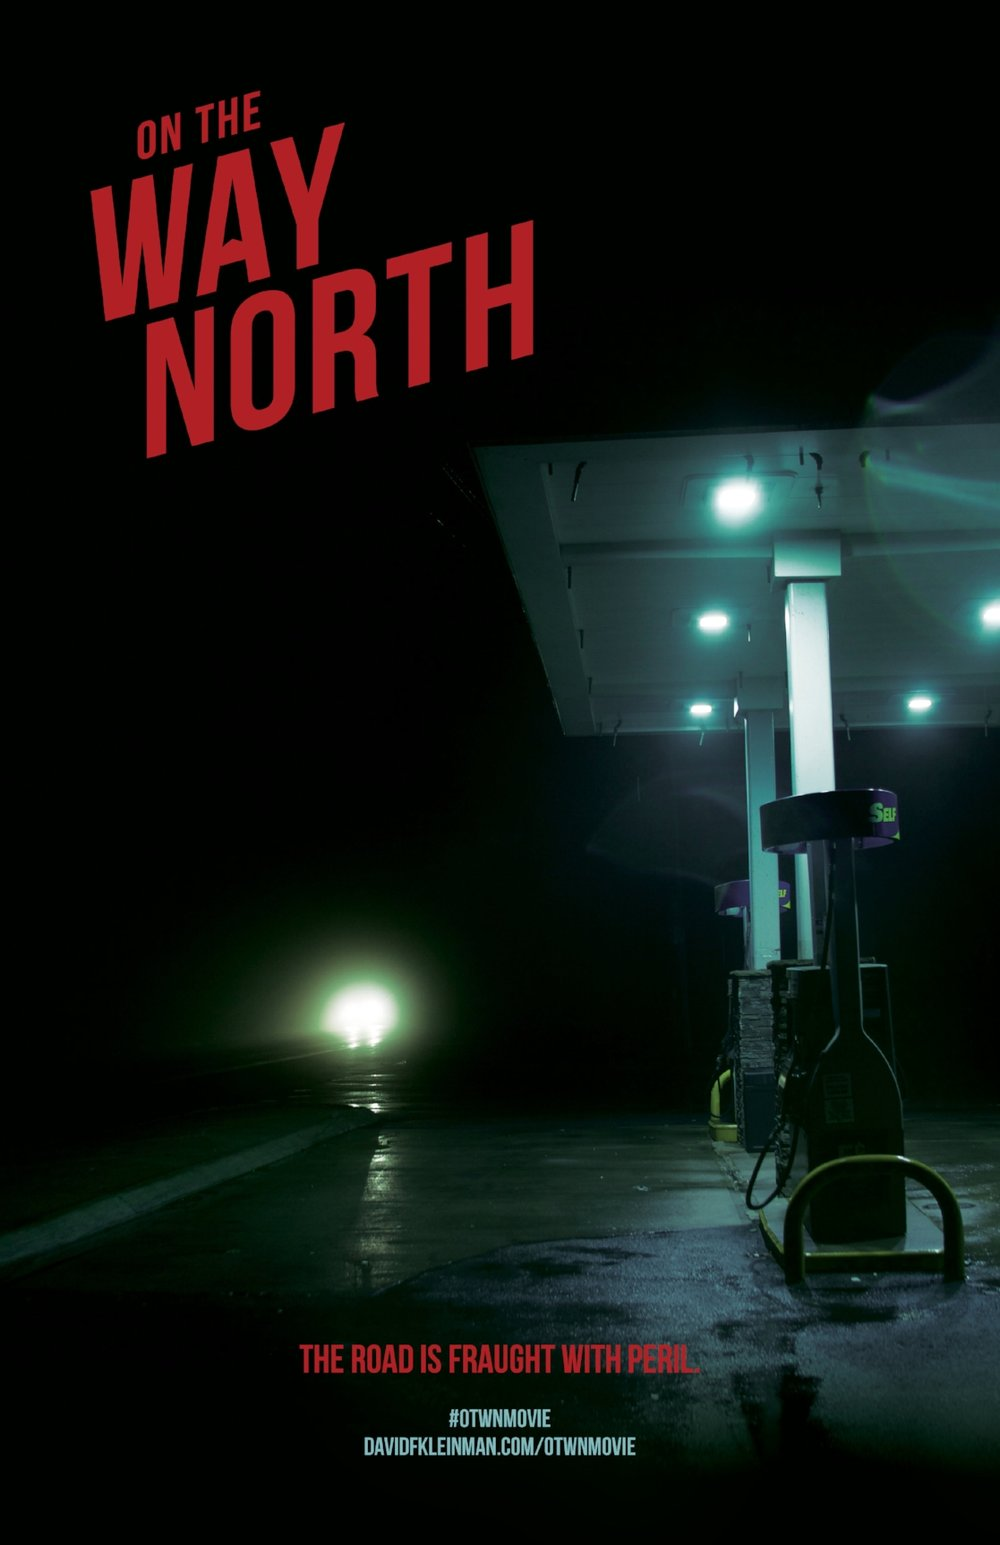 DK-0102 On The Way North - Poster_SS2.jpg